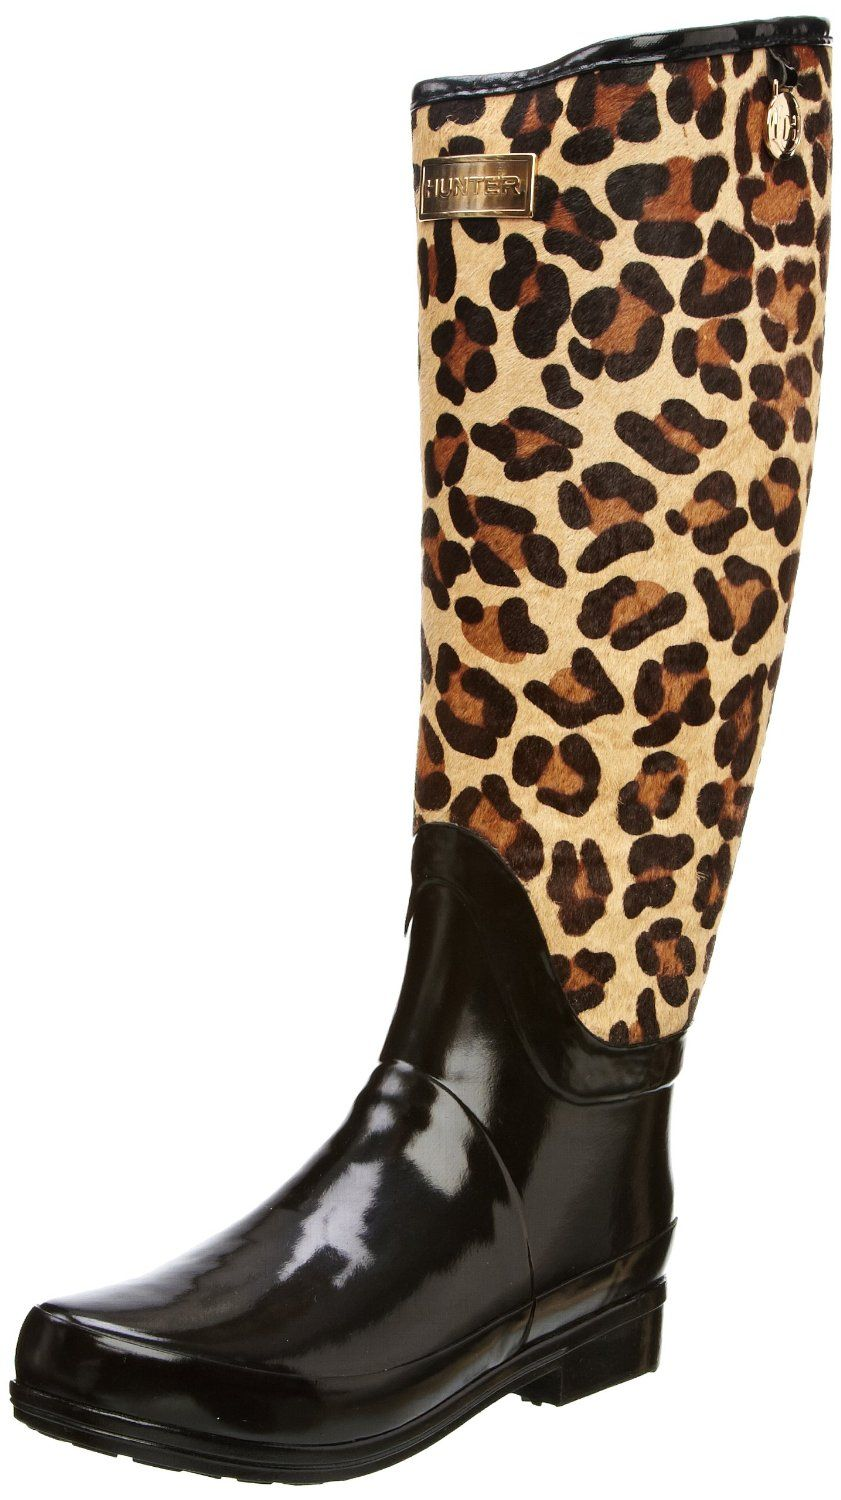 1a1e9f373d25 HUNTER. THIS IS A MUST! | Love.........(Shoes!) | Boots, Fashion ...